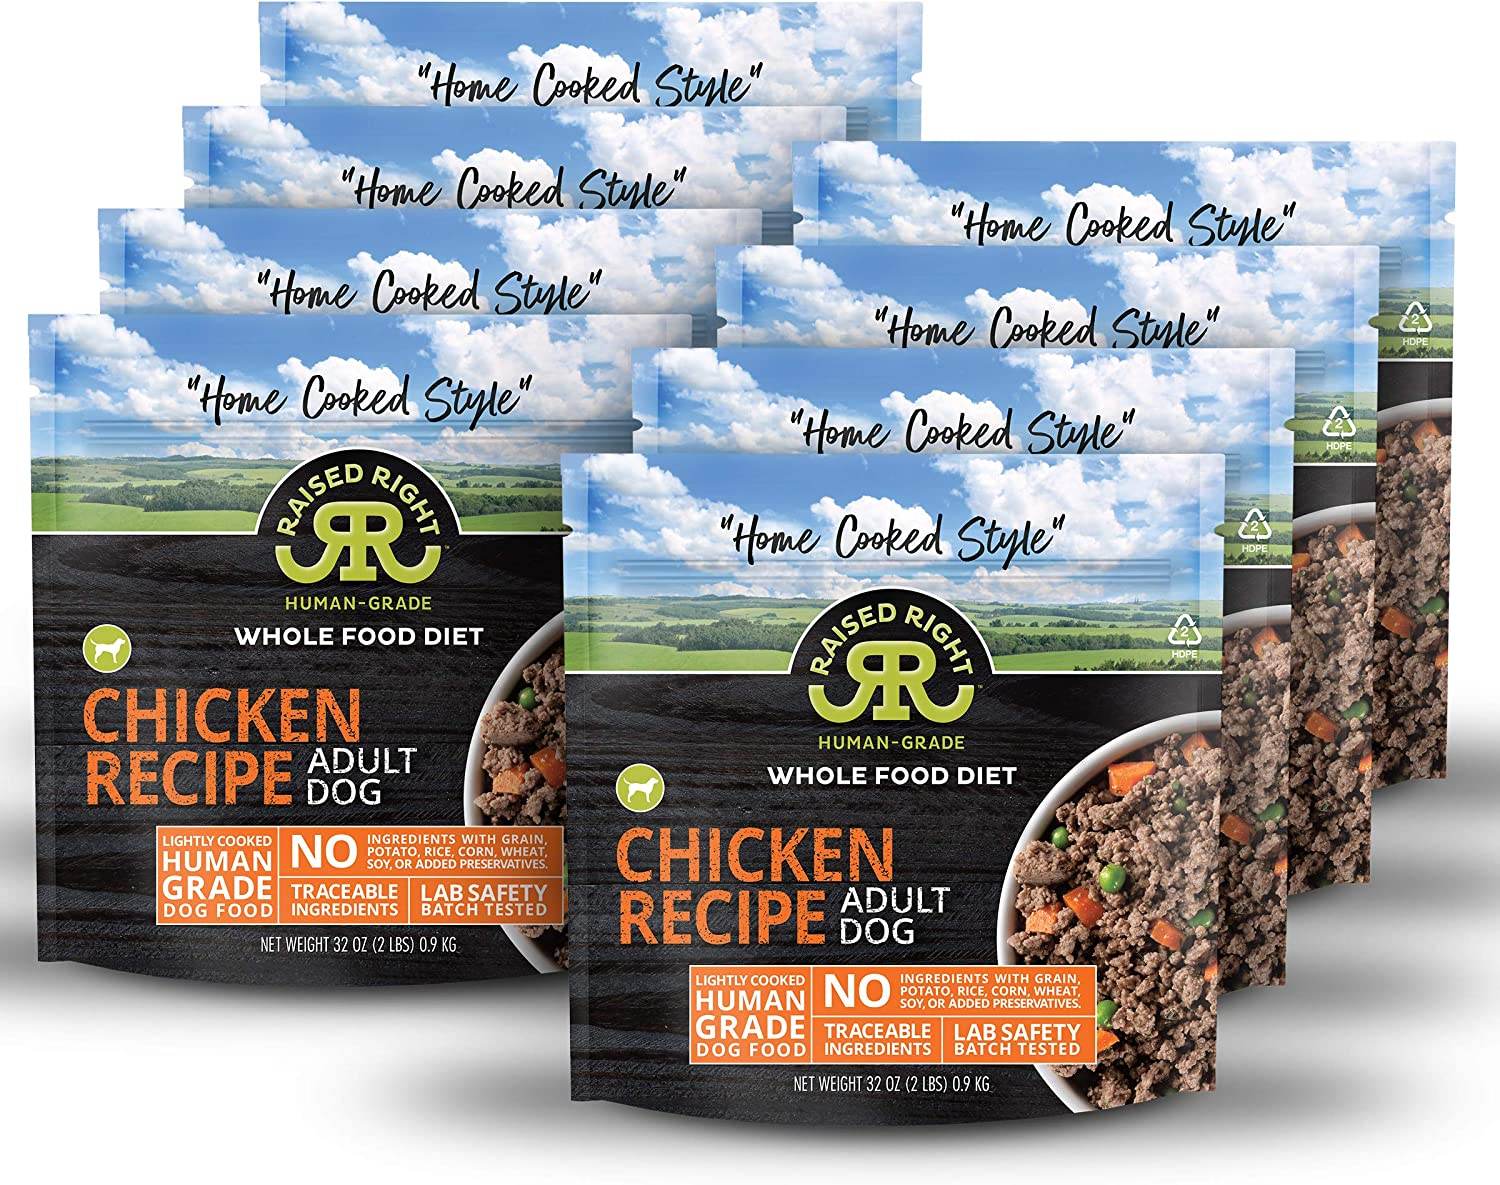 """Raised Right Human-Grade Frozen Dog Food, Low Carb """"Home Cooked Style"""" Whole Food Diet"""